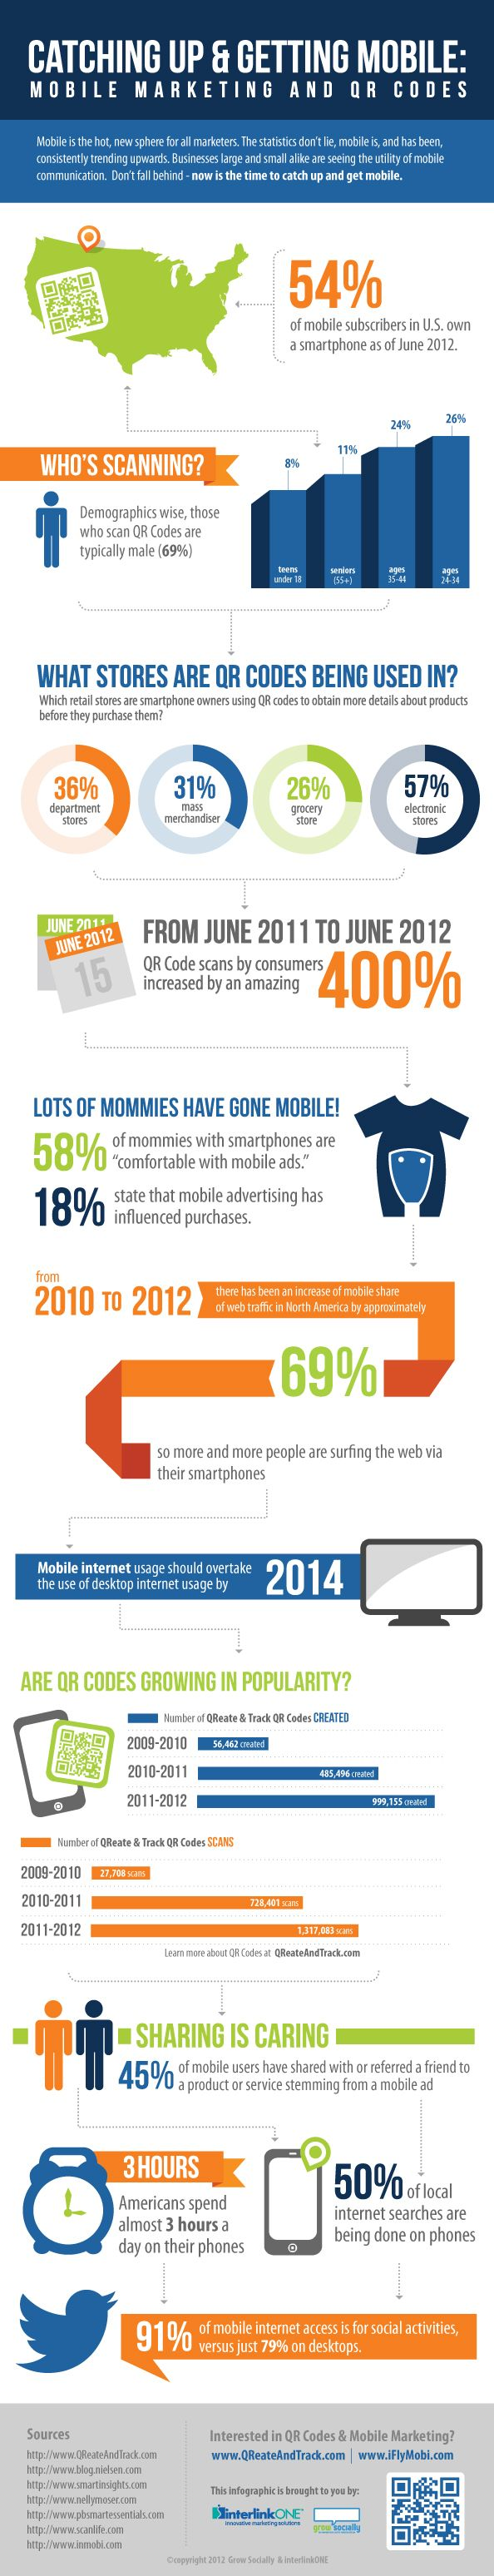 Catching Up and Getting Mobile [Infographic] posted by Lou Cimaglia  Michelle Jollymore [of iFlyMobi] created this incredible infographic about the the growth and usage of QR codes and mobile technology. Check it out!